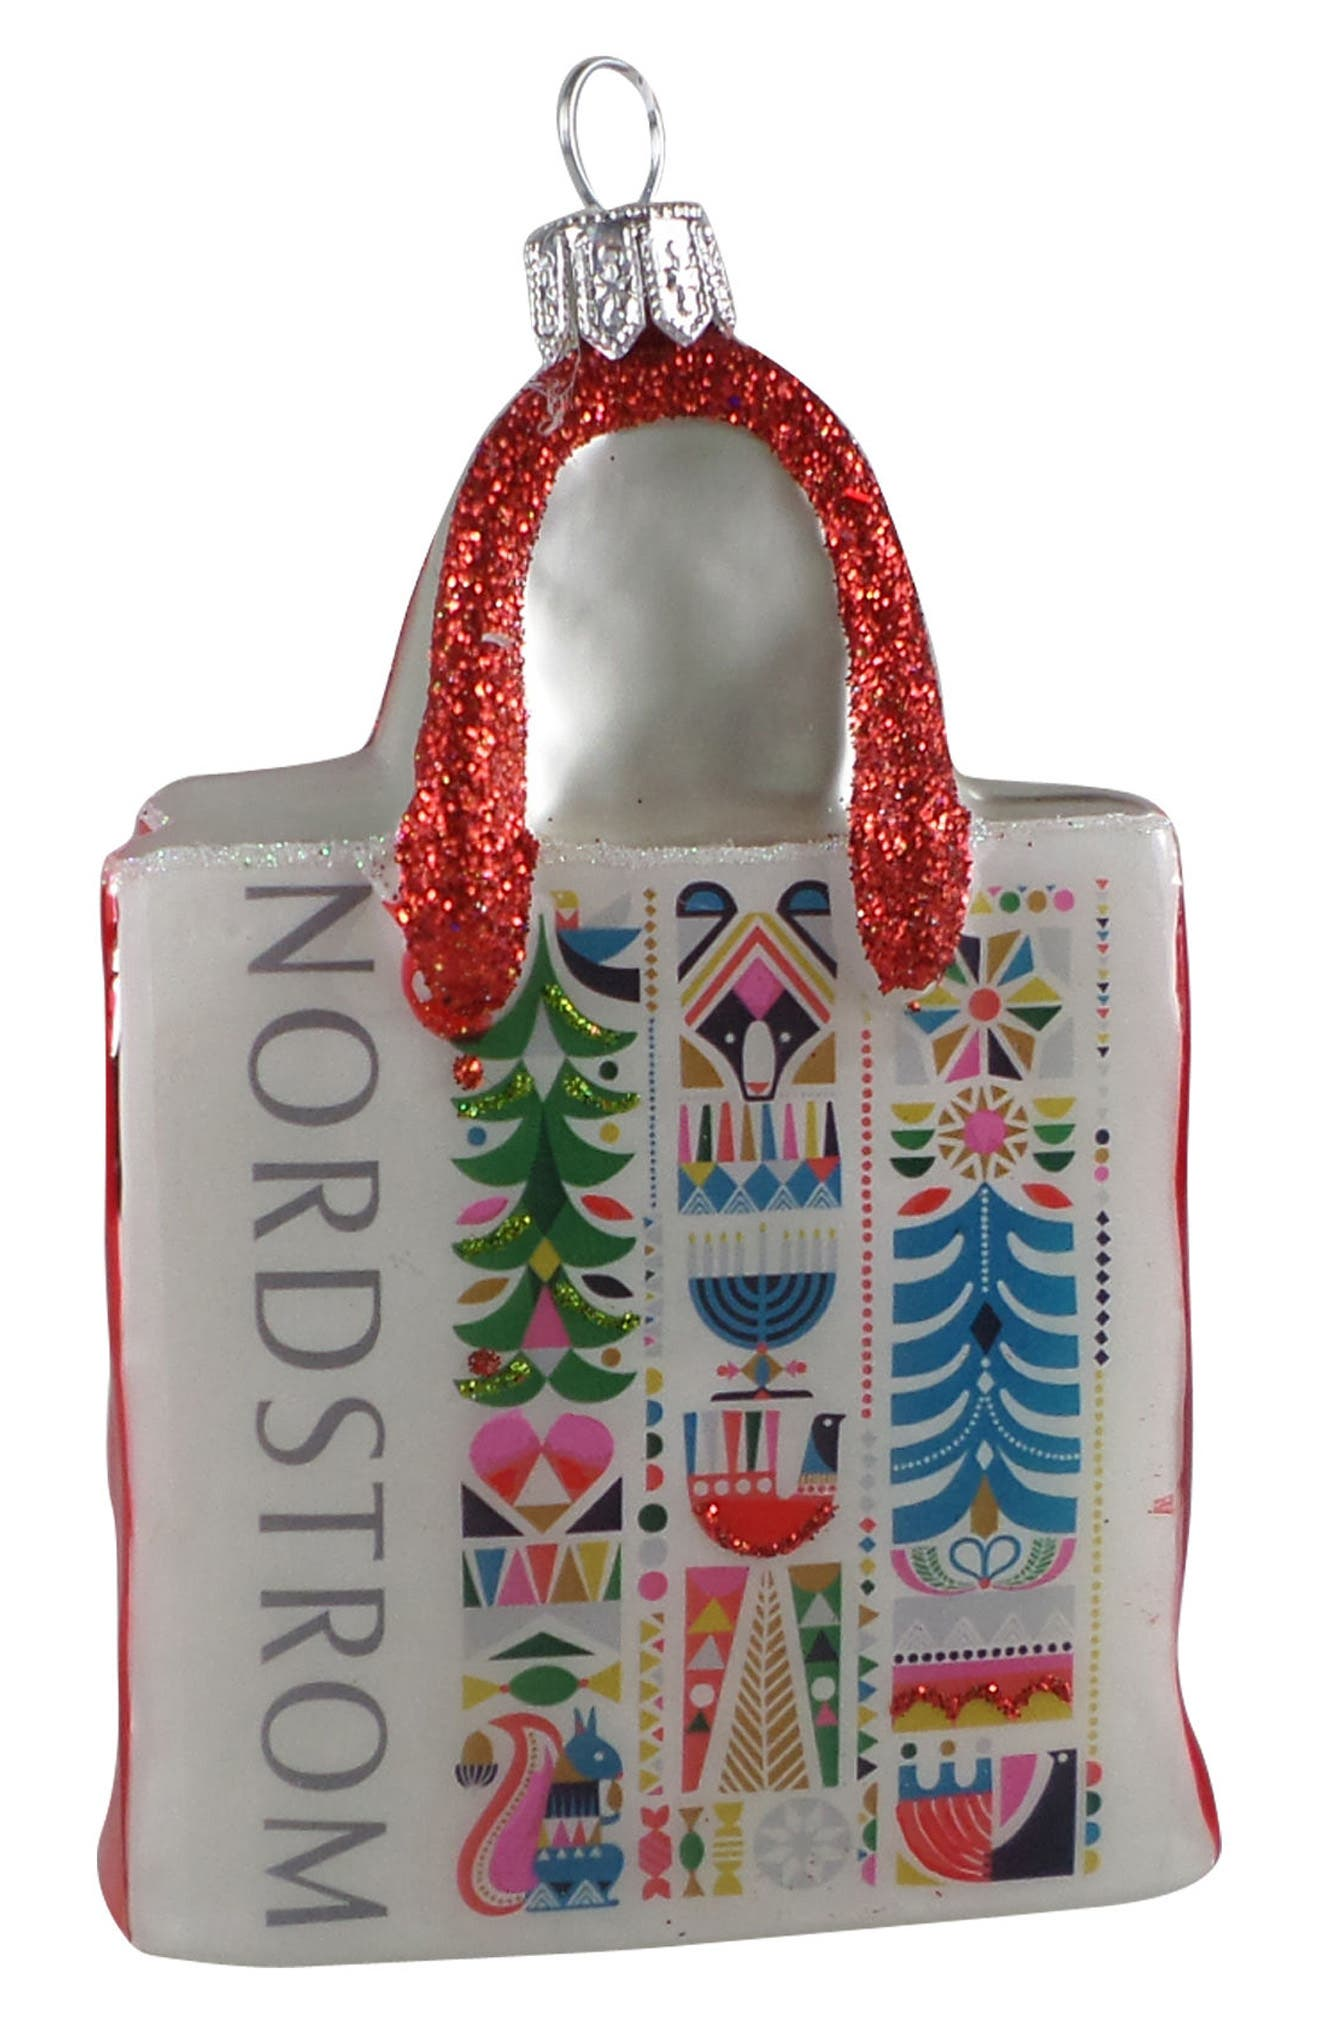 Nordstrom Shopping Bag 2017 Ornament,                         Main,                         color, White Multi Holiday